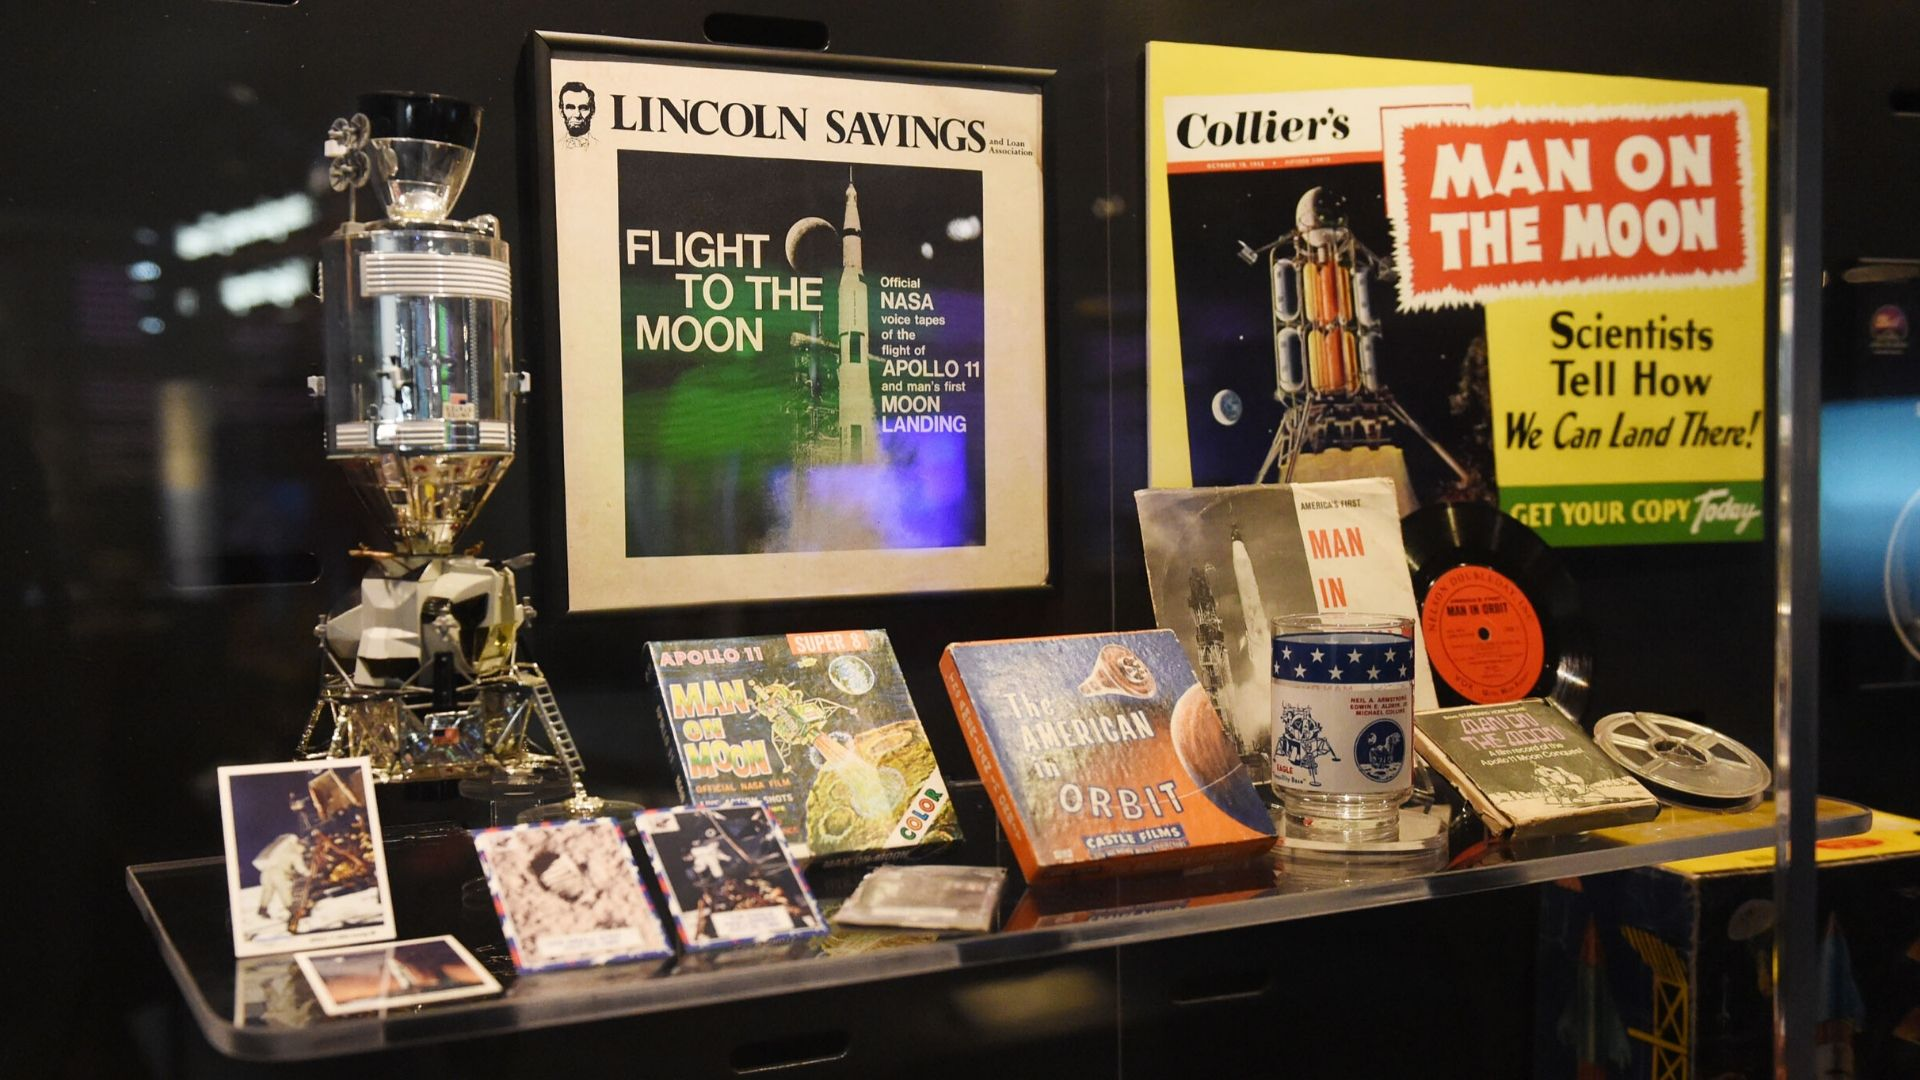 moon travel books and posters